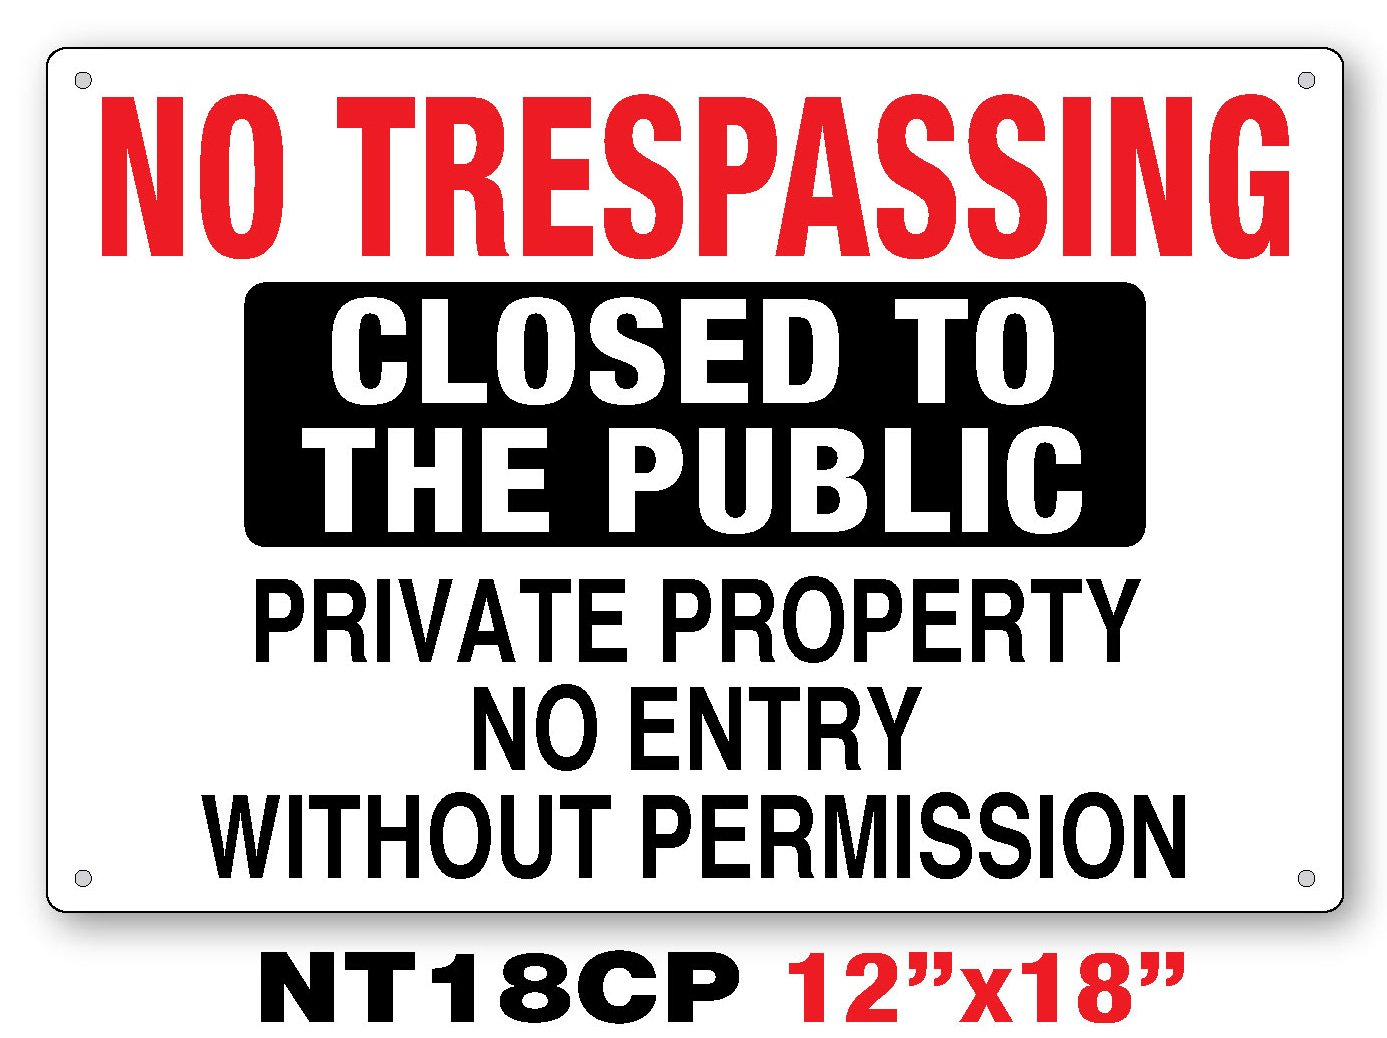 Amazon.com: No Trespassing cartel: Office Products